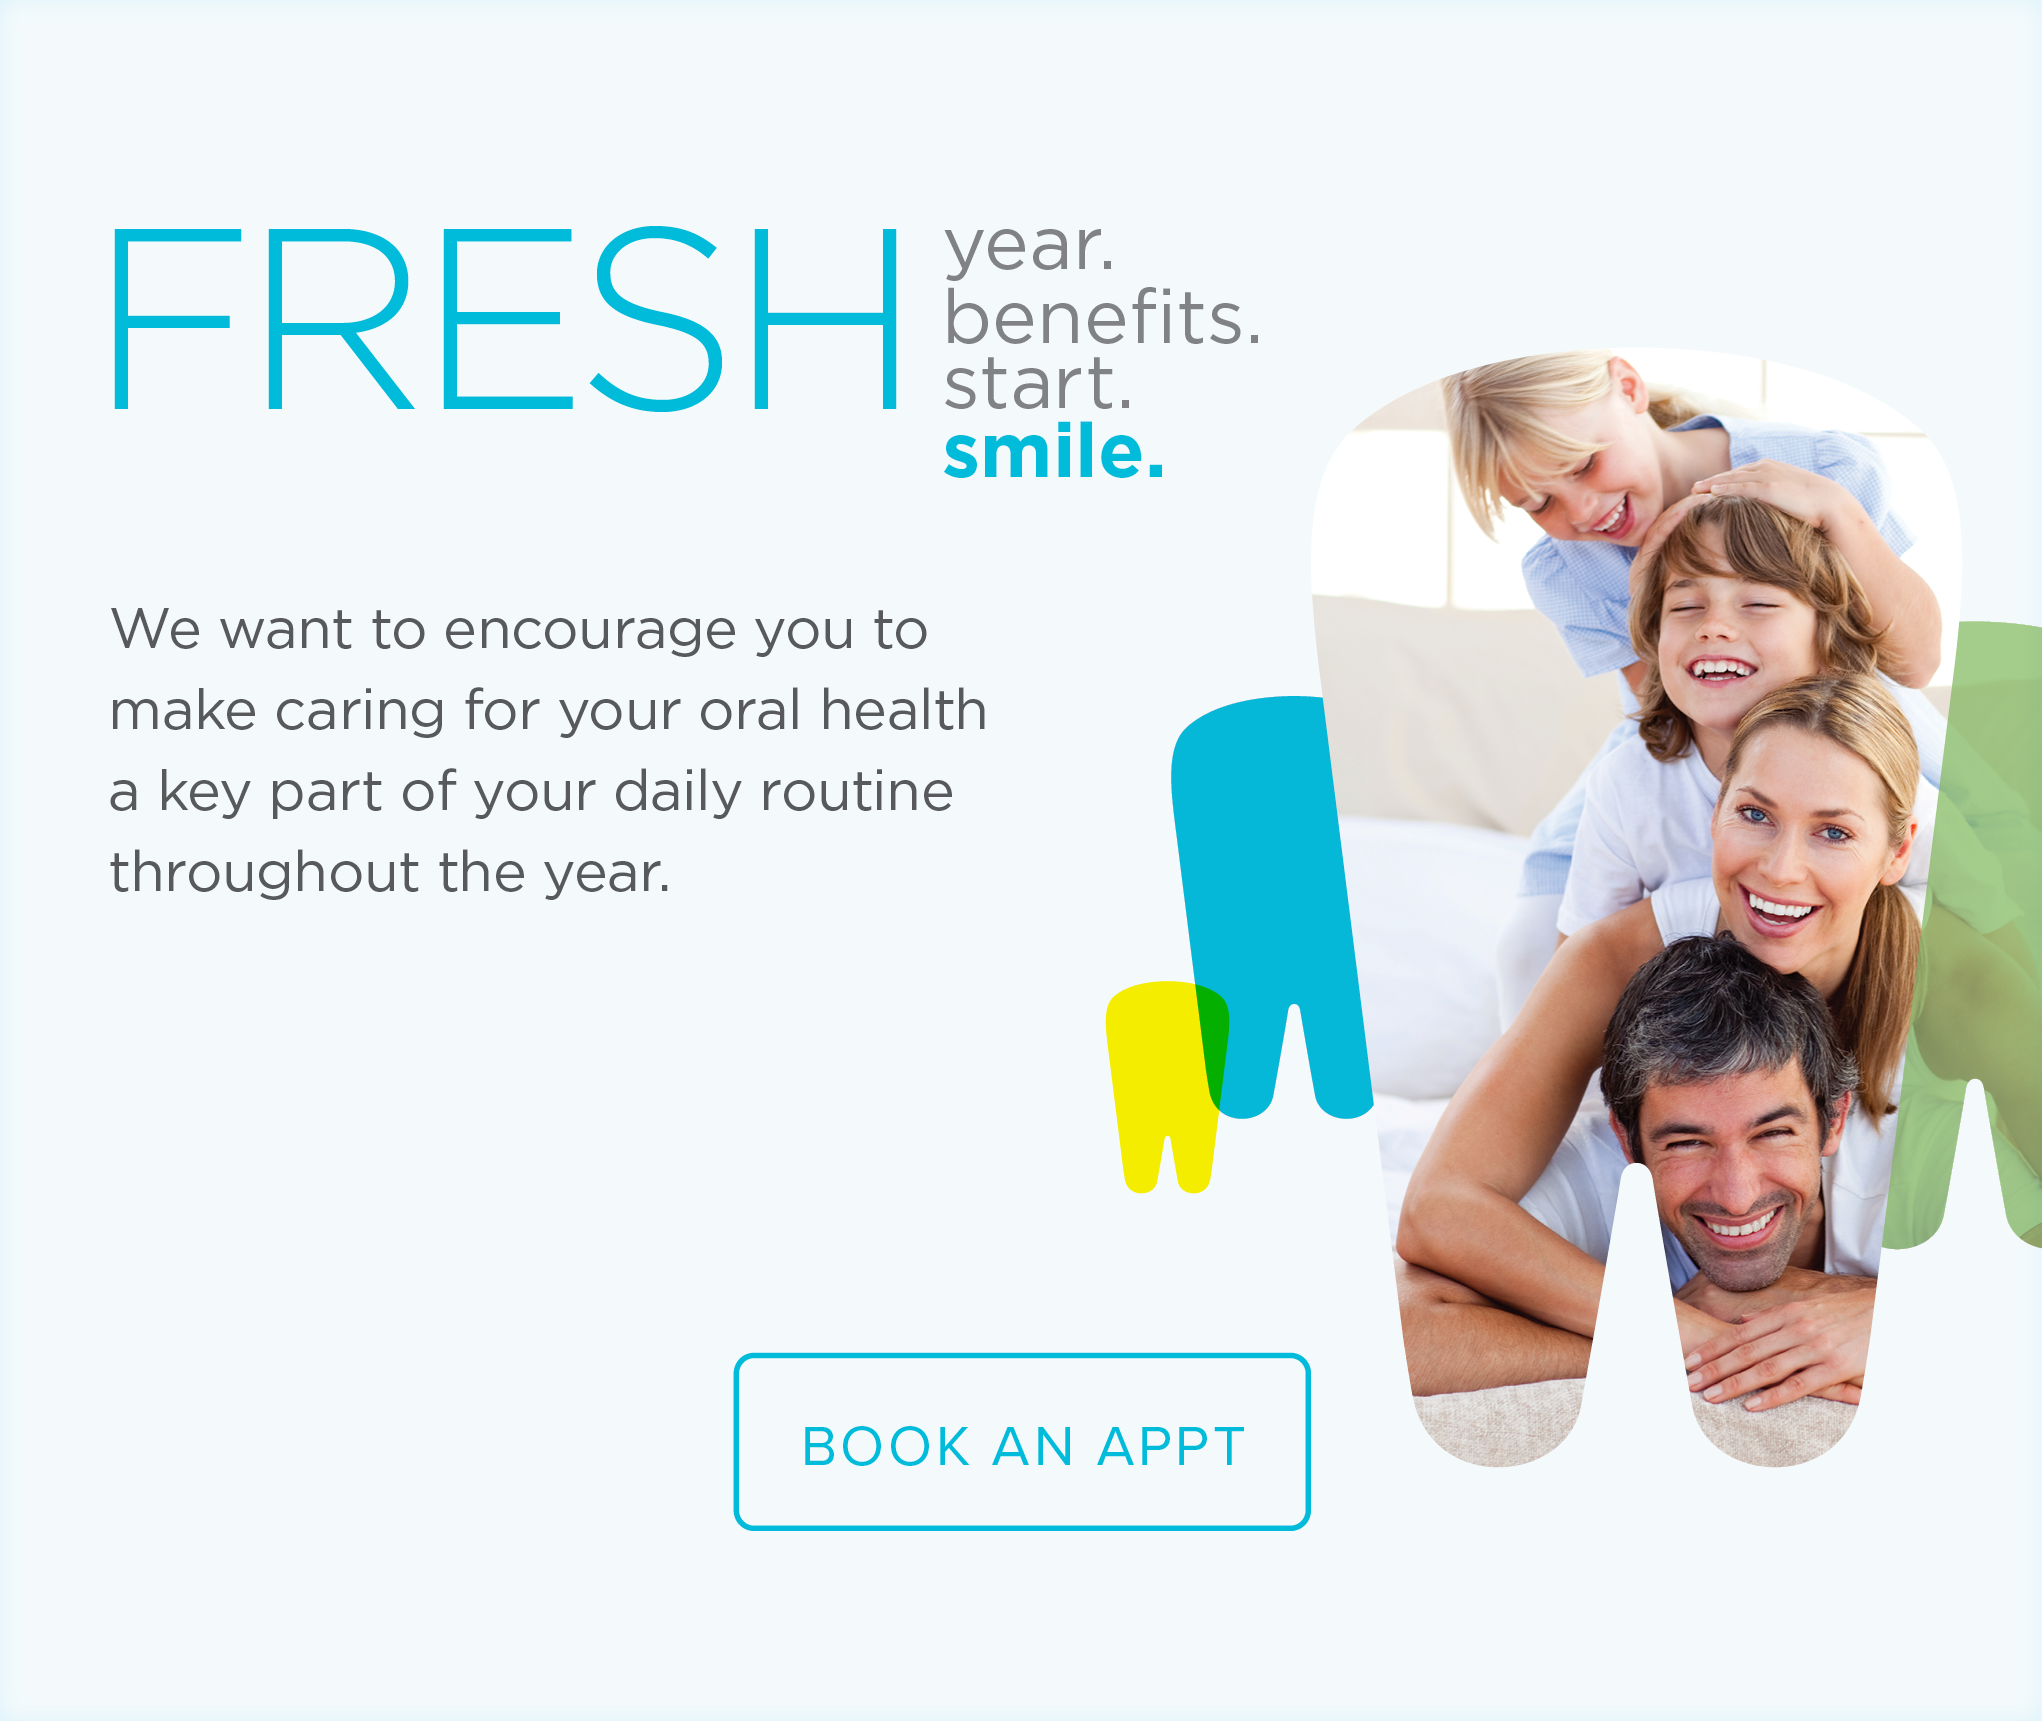 Novato Smiles Dentistry - Make the Most of Your Benefits